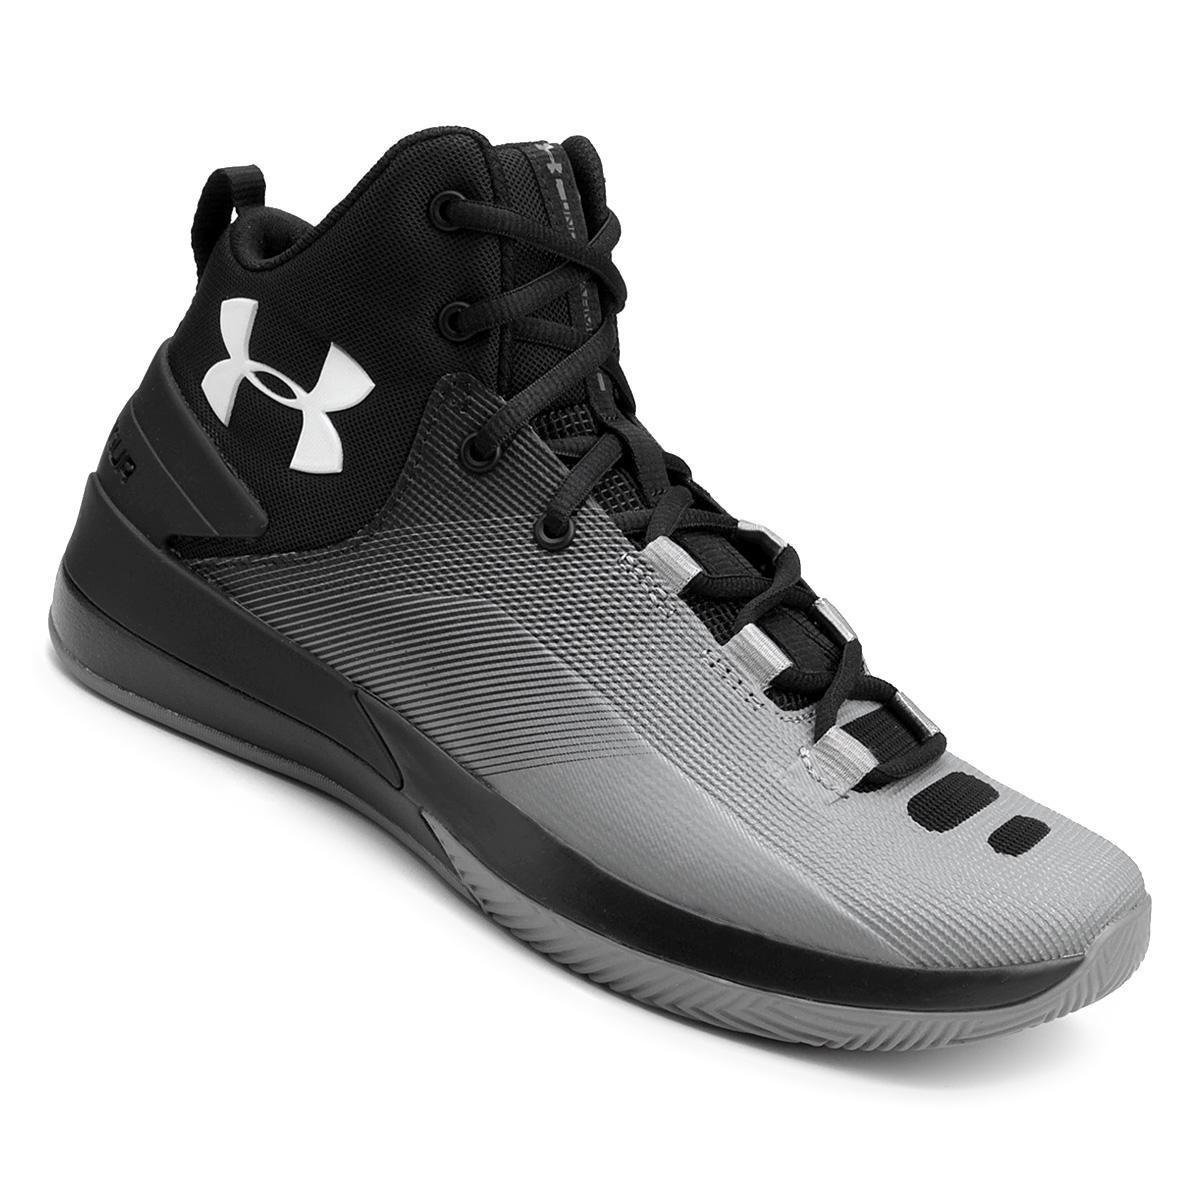 90db8d9ba Tênis Under Armour Rocket 3 Masculino - Preto e Cinza | Loja NBA